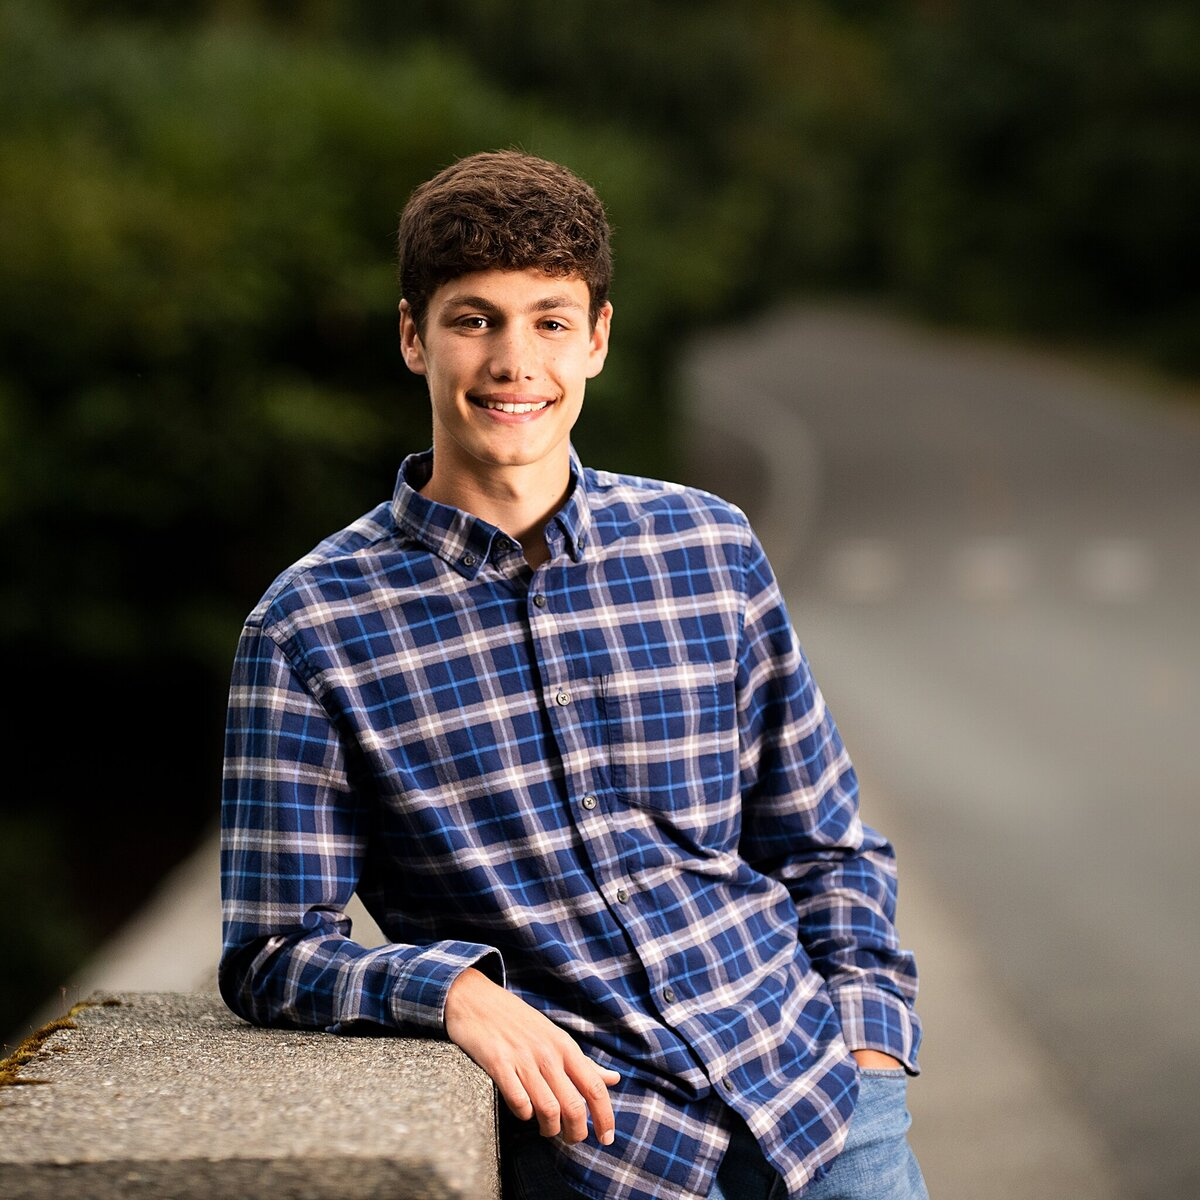 Senior Portrait Photographer Cle Elum Washington